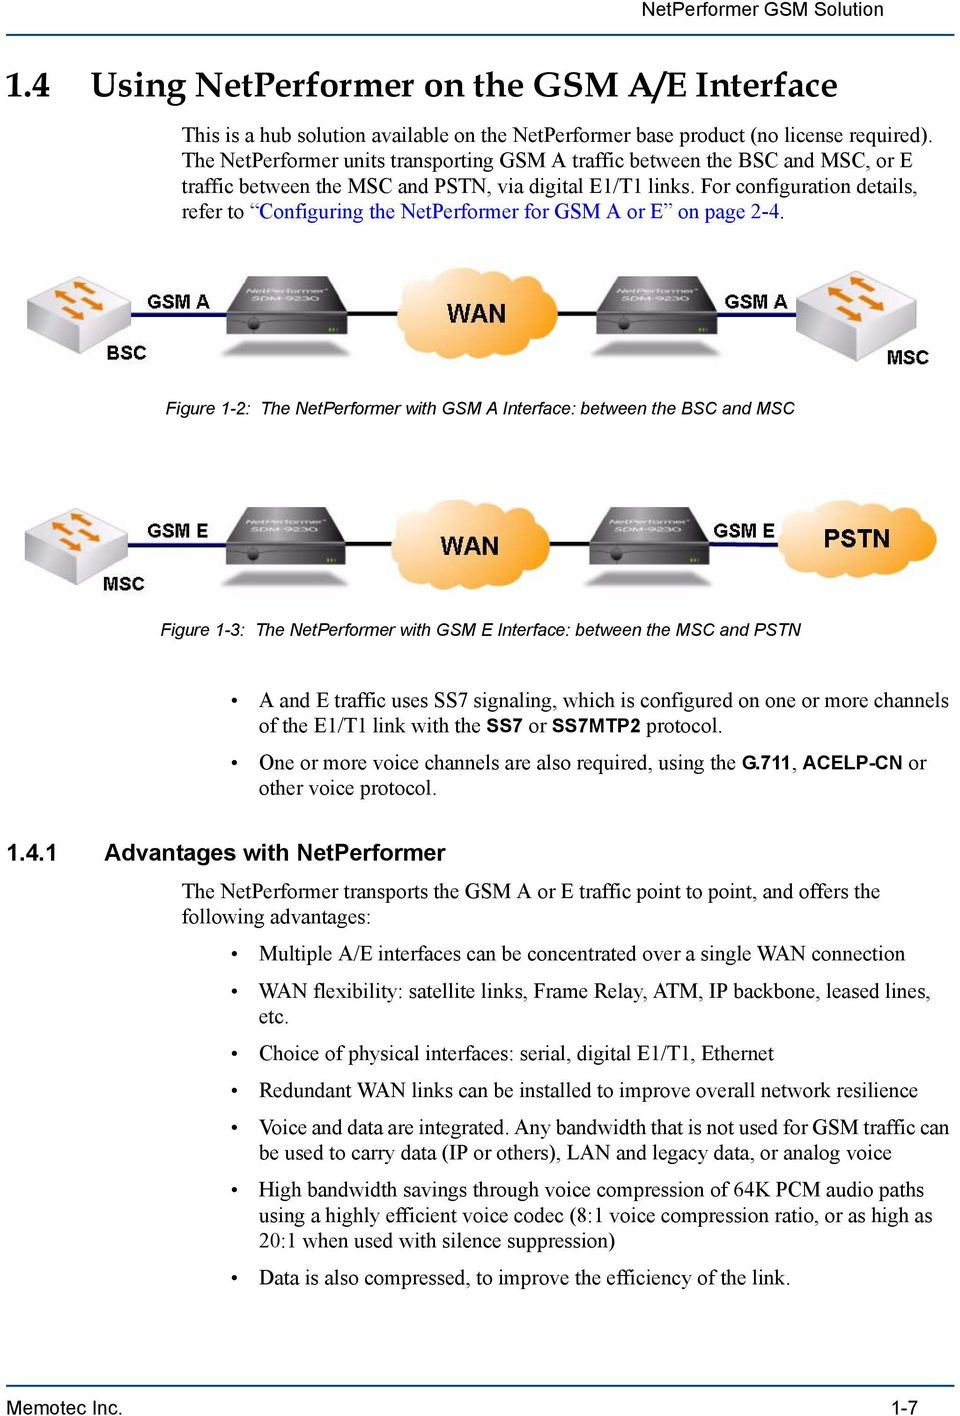 For configuration details, refer to Configuring the NetPerformer for GSM A or E on page 2-4.